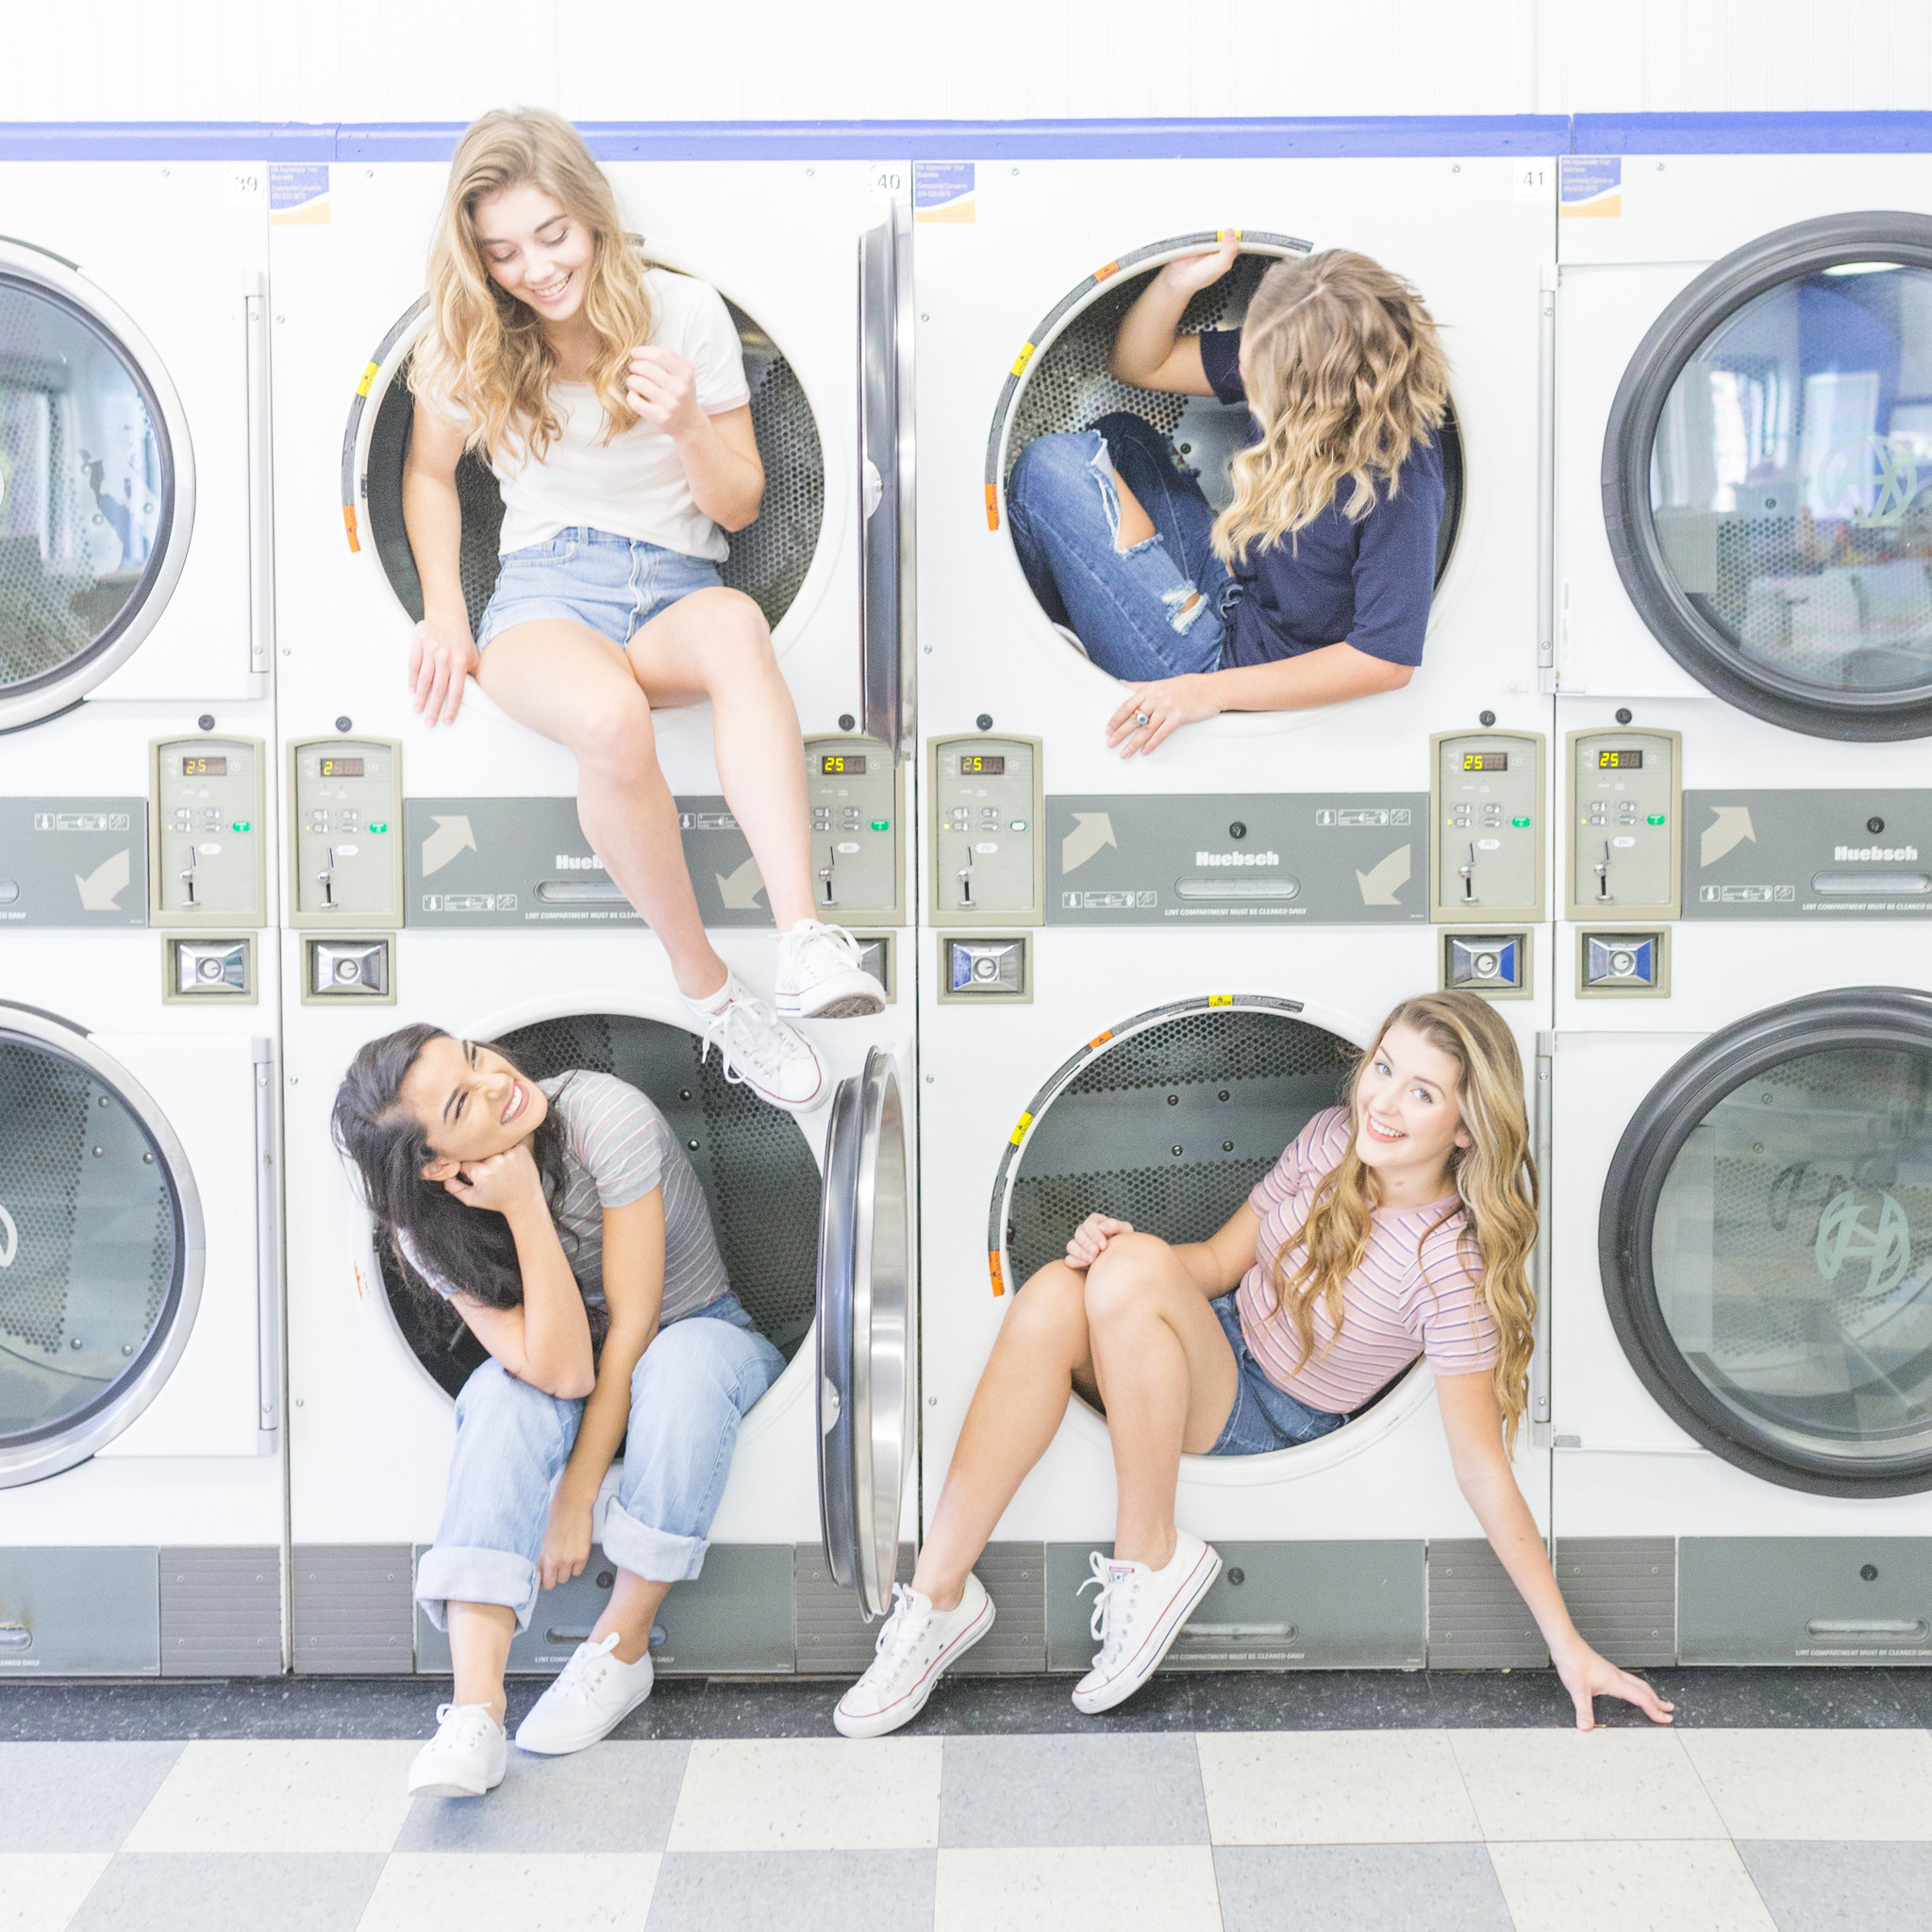 Group of girls at a laundry mat